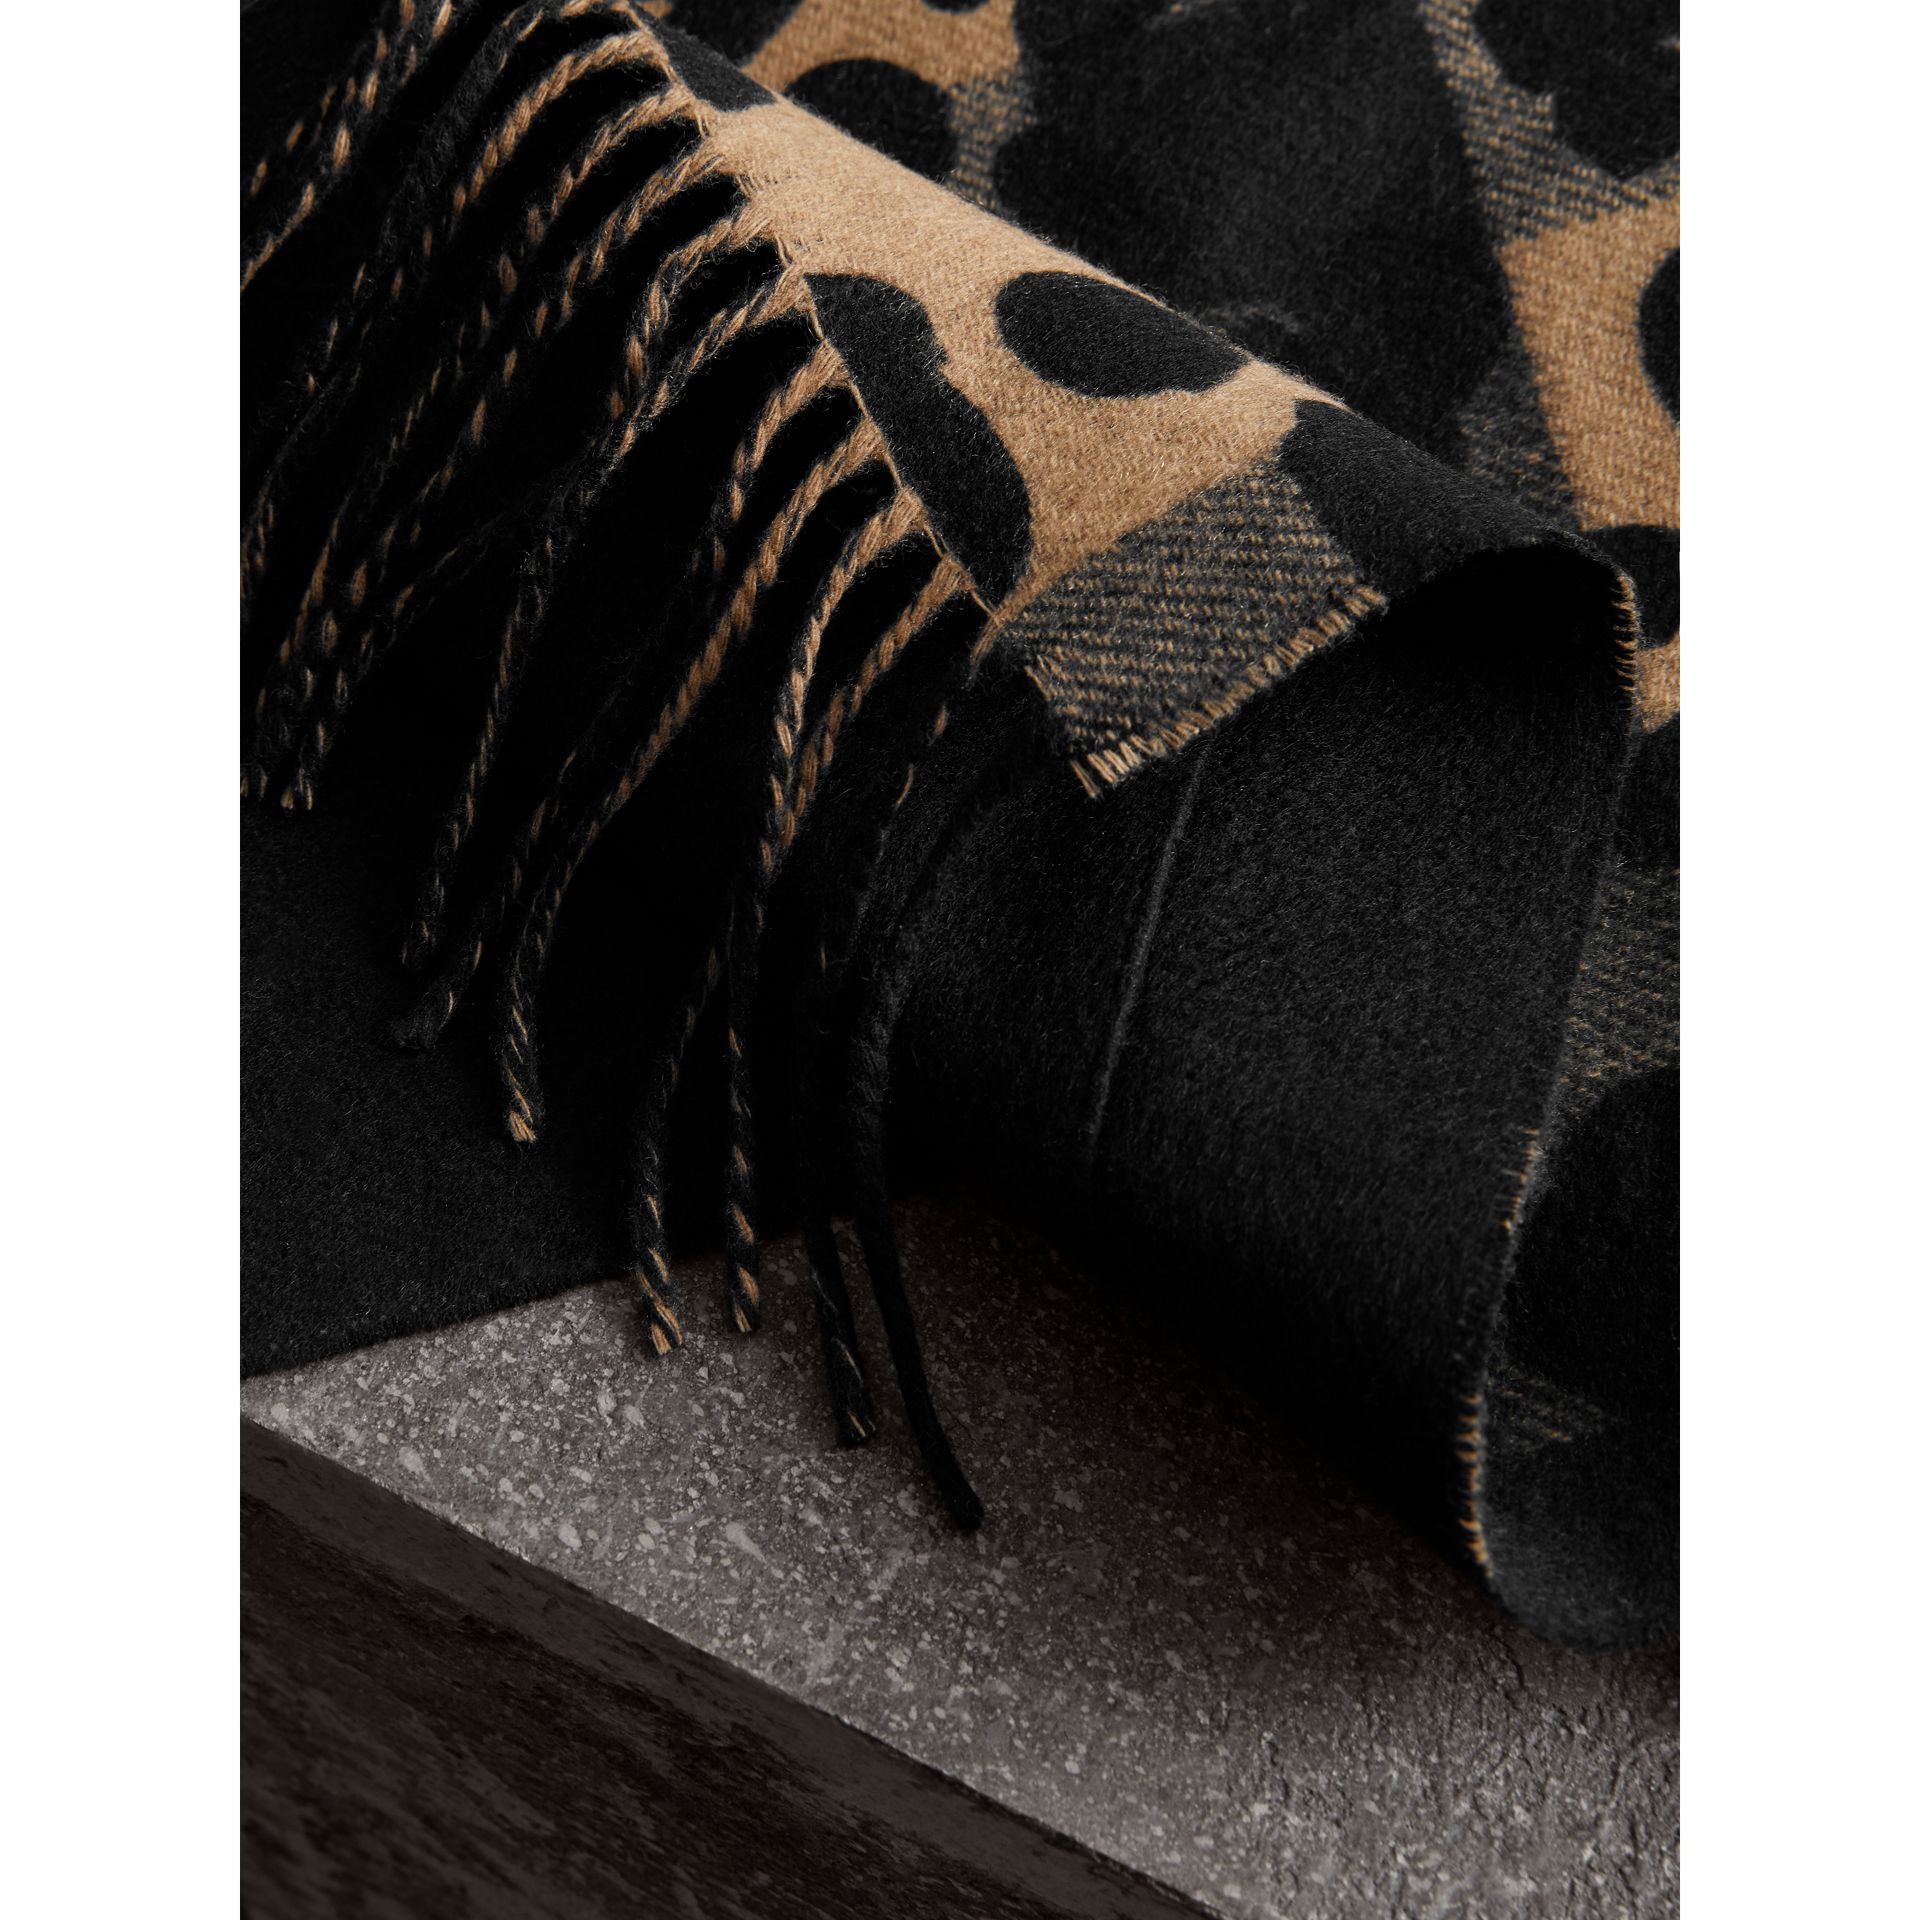 Animal Pattern Merino Wool Cashmere Stole in Camel - Women | Burberry Canada - gallery image 1